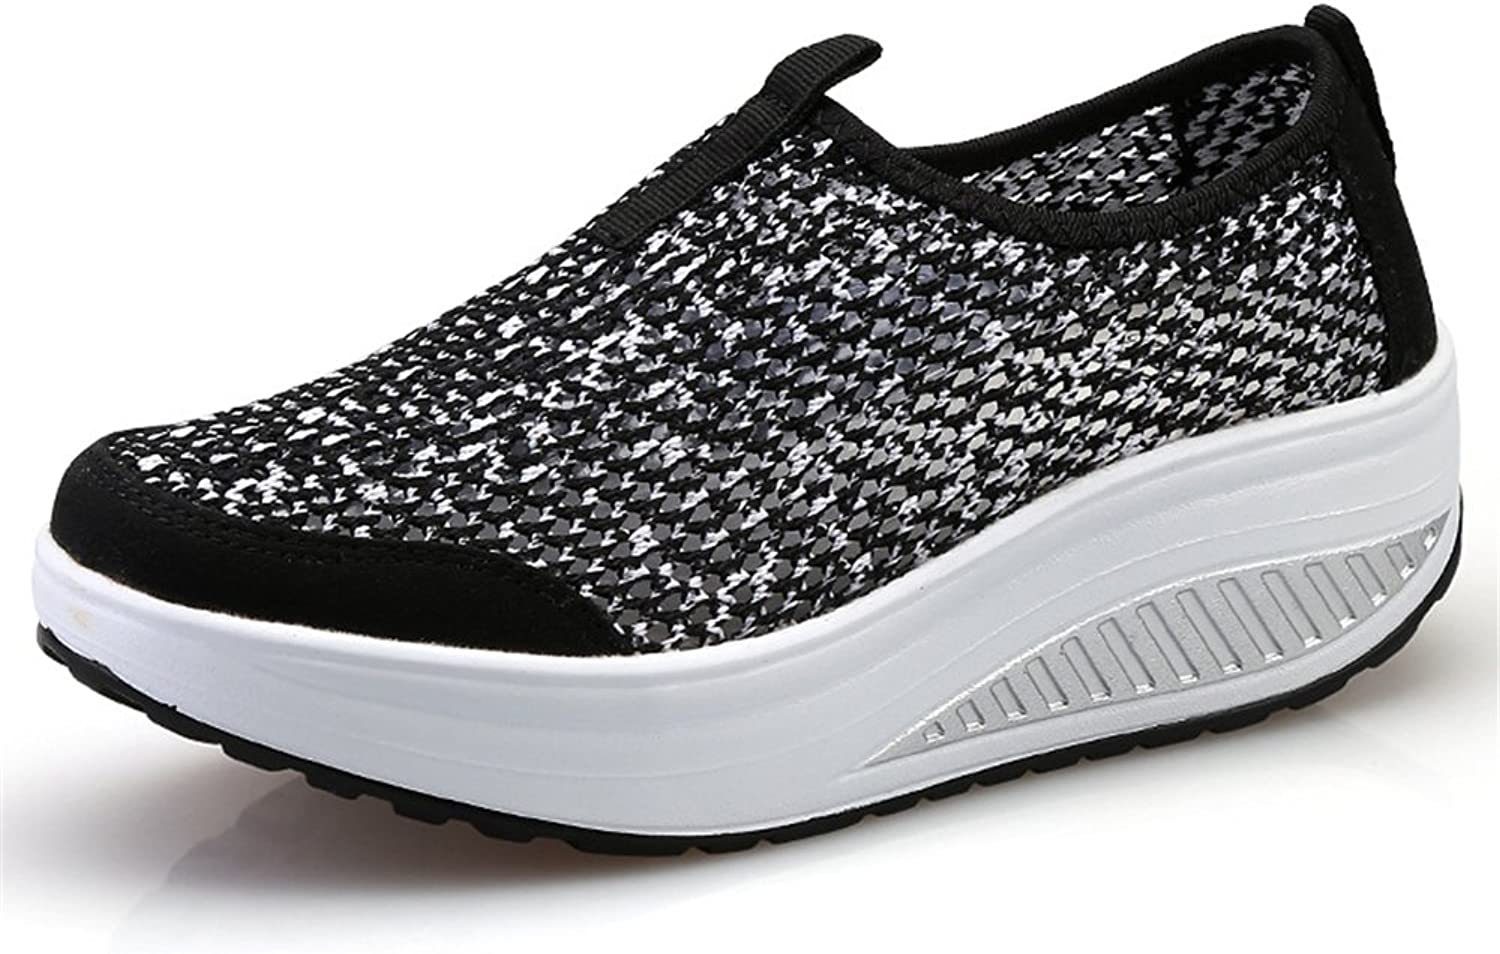 Edv0d2v266 Breathable Sneakers Mesh shoes Women Casual Slip on shoes Lightweight Walking shoes